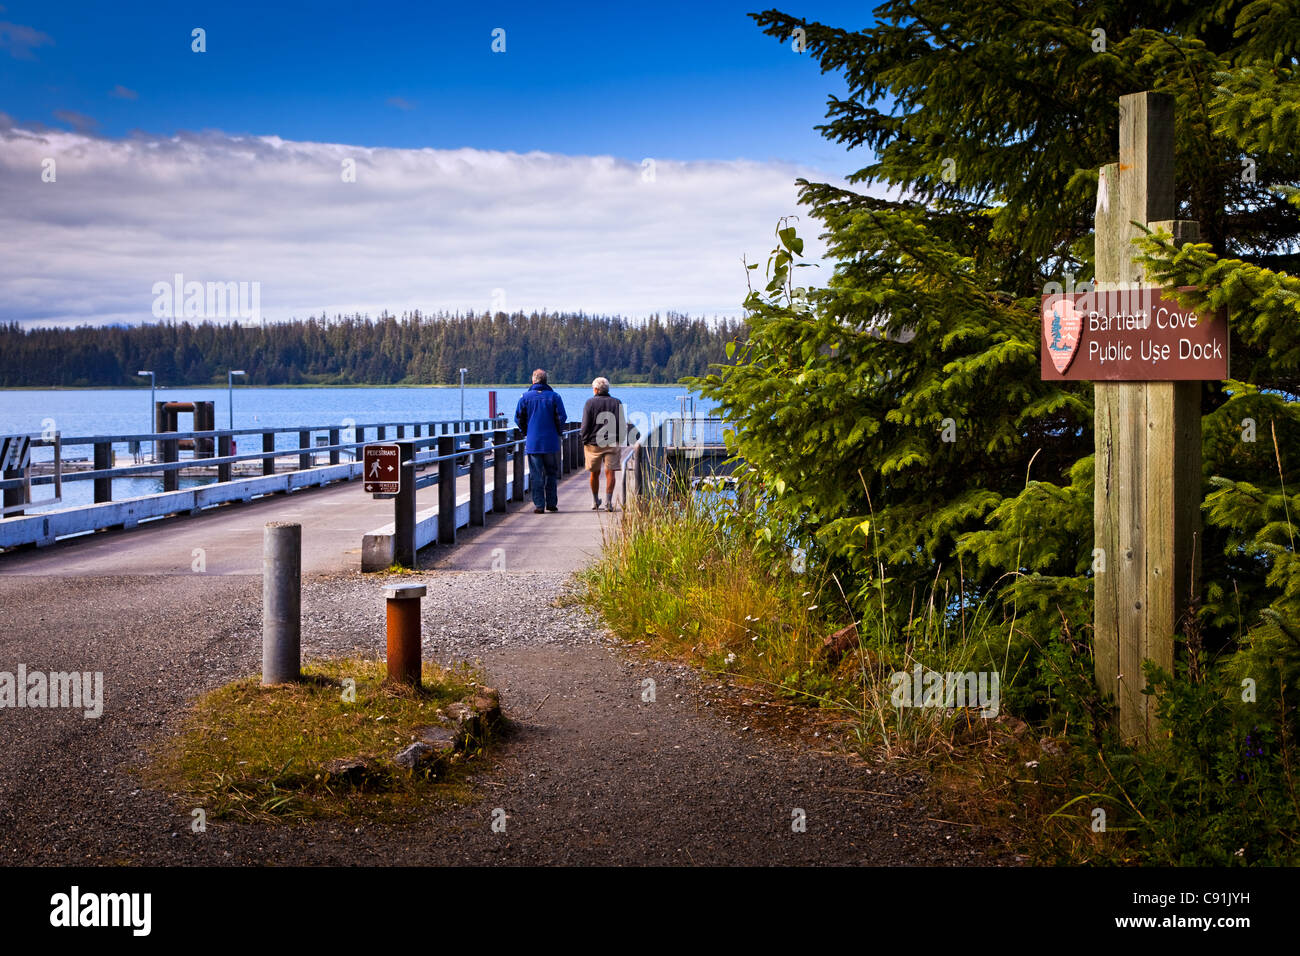 Visitors walking down to the public use dock in Bartlett Cove, Gustavus, Glacier Bay National Park & Preserve, - Stock Image